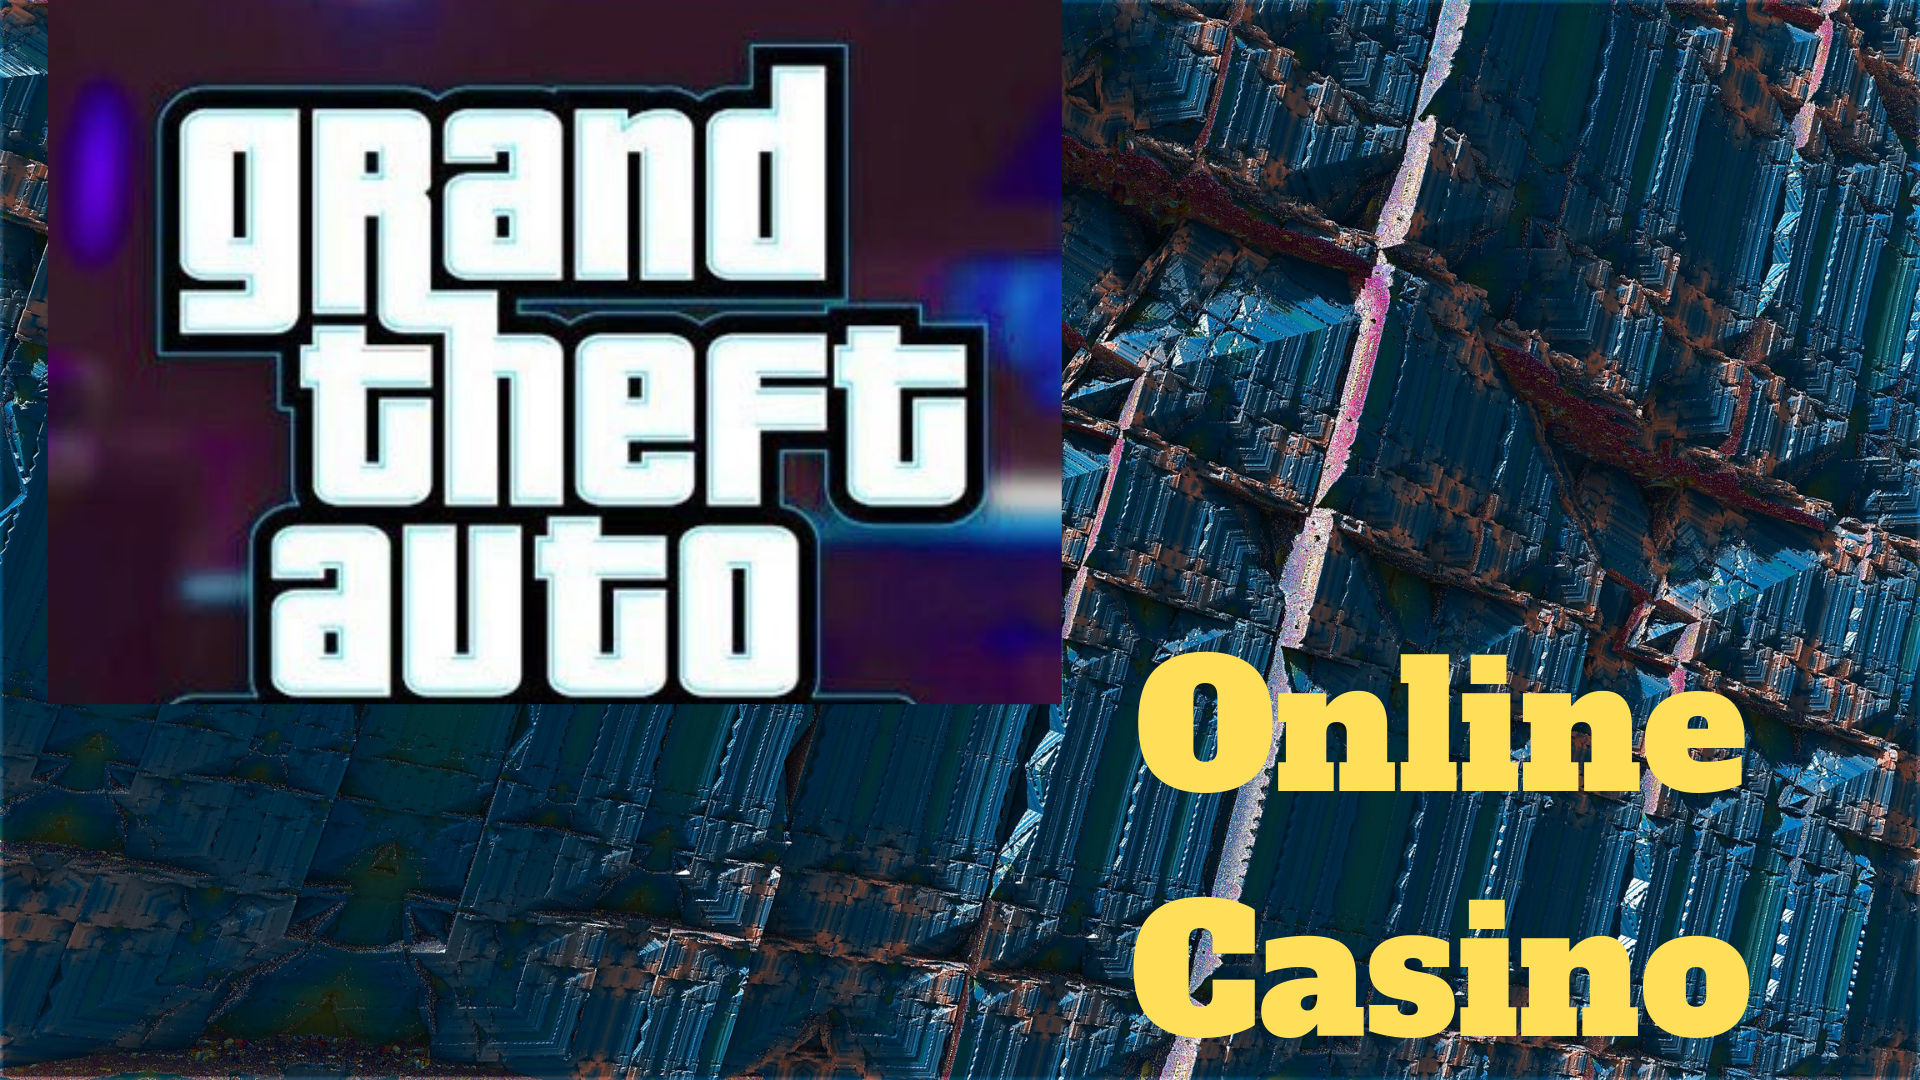 GTA 5 Online Casino release, trailer, gameplay - The News Region